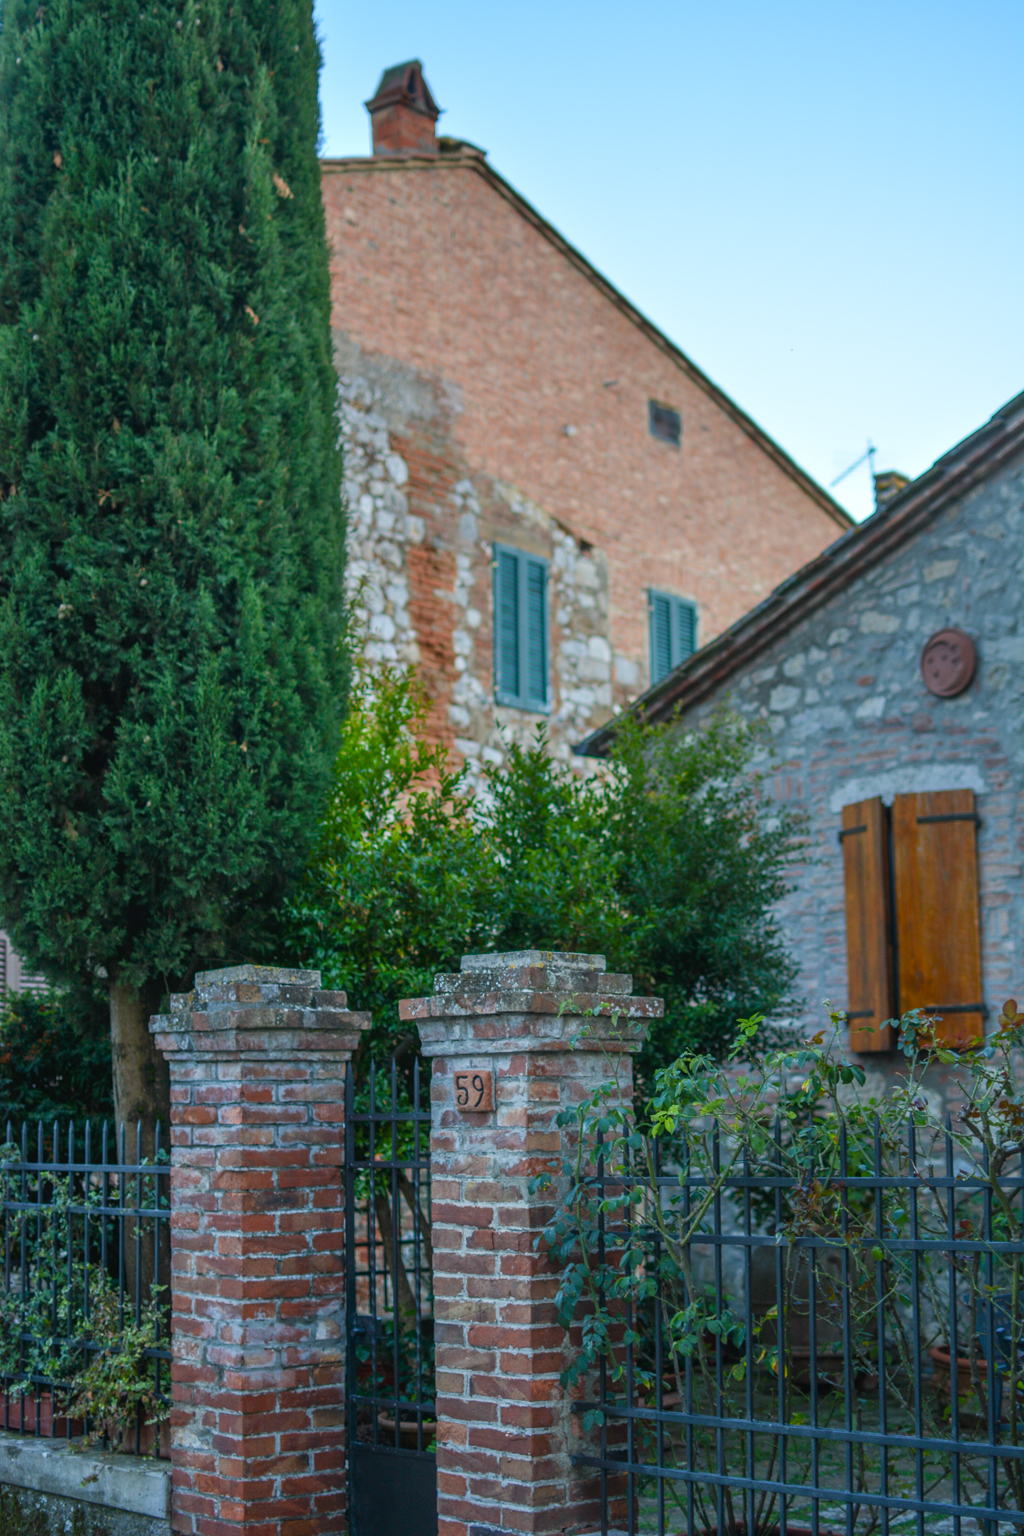 Tuscany's Montefollonico is the perfect place to relax and live like a local